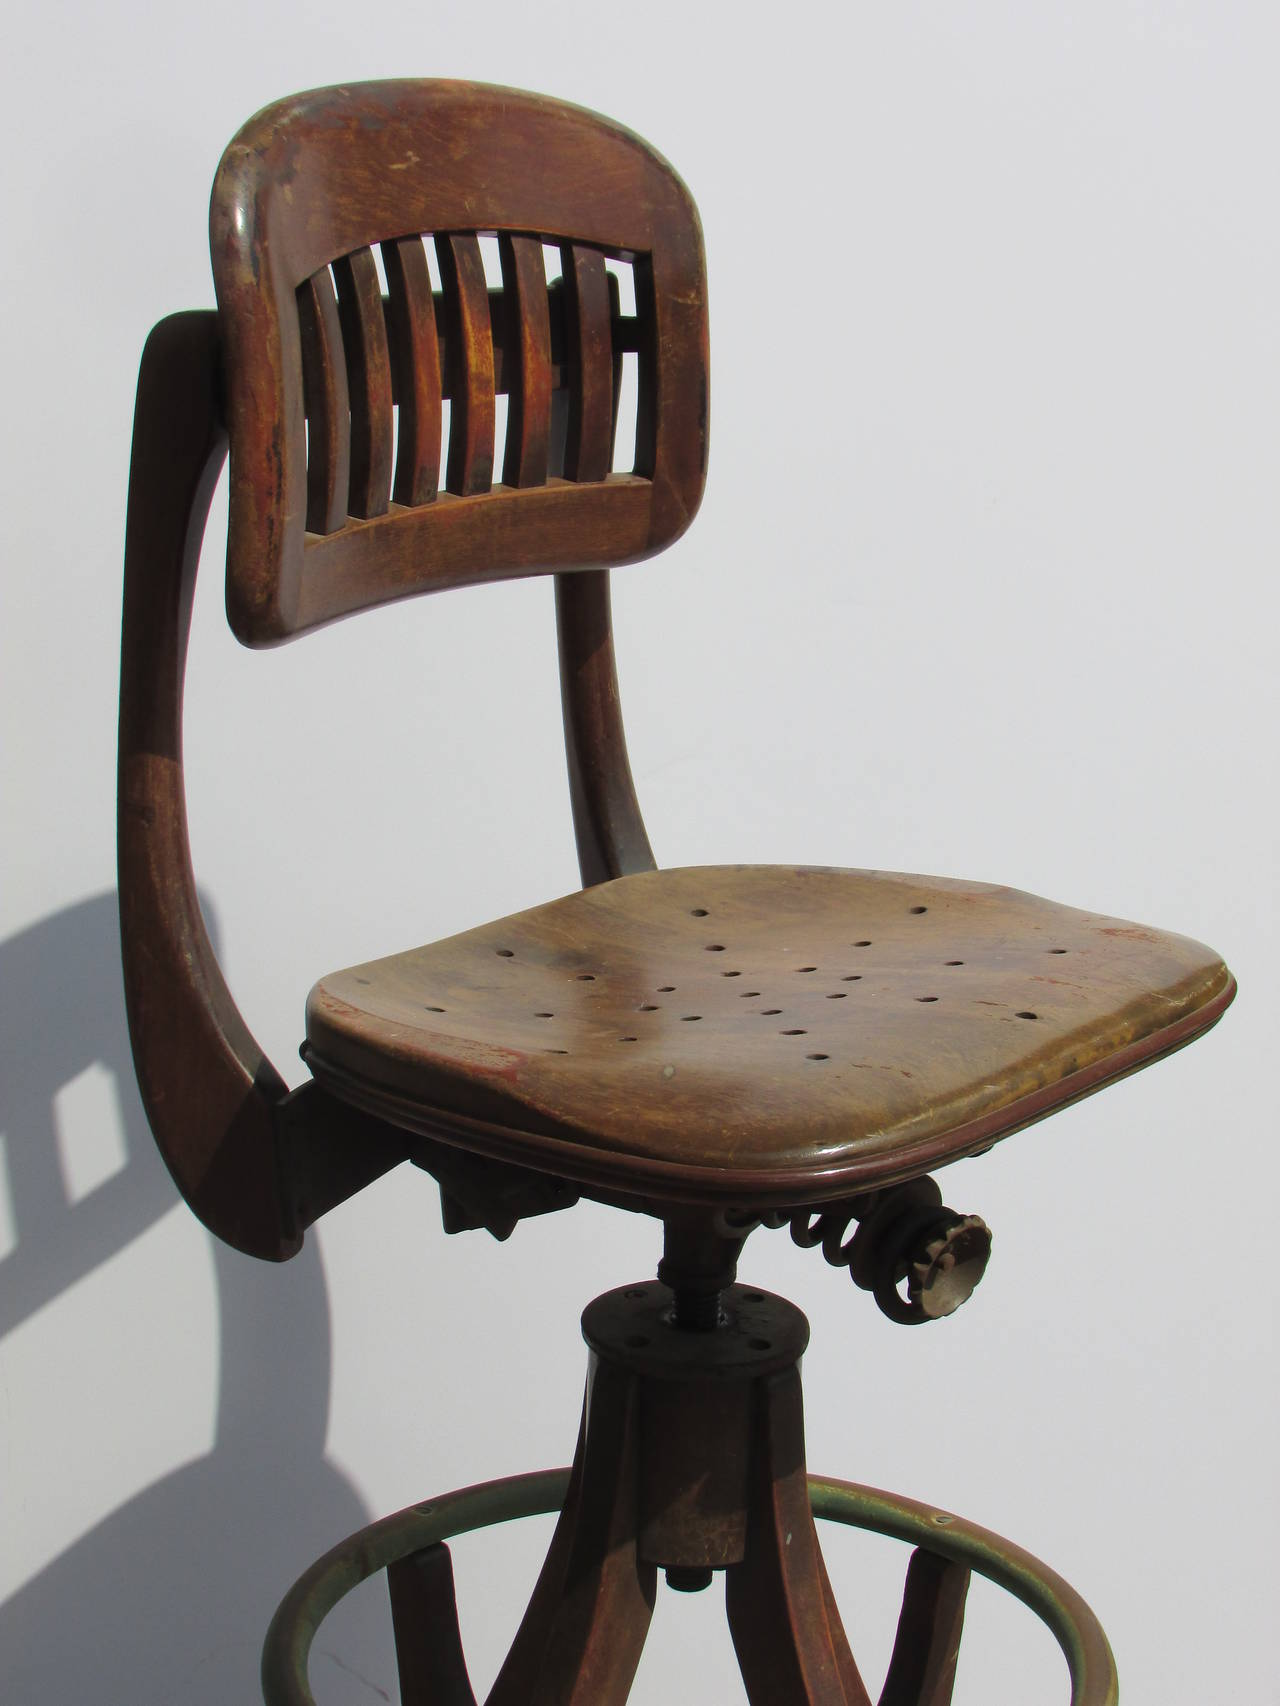 Antique American Industrial Drafting Stool At 1stdibs